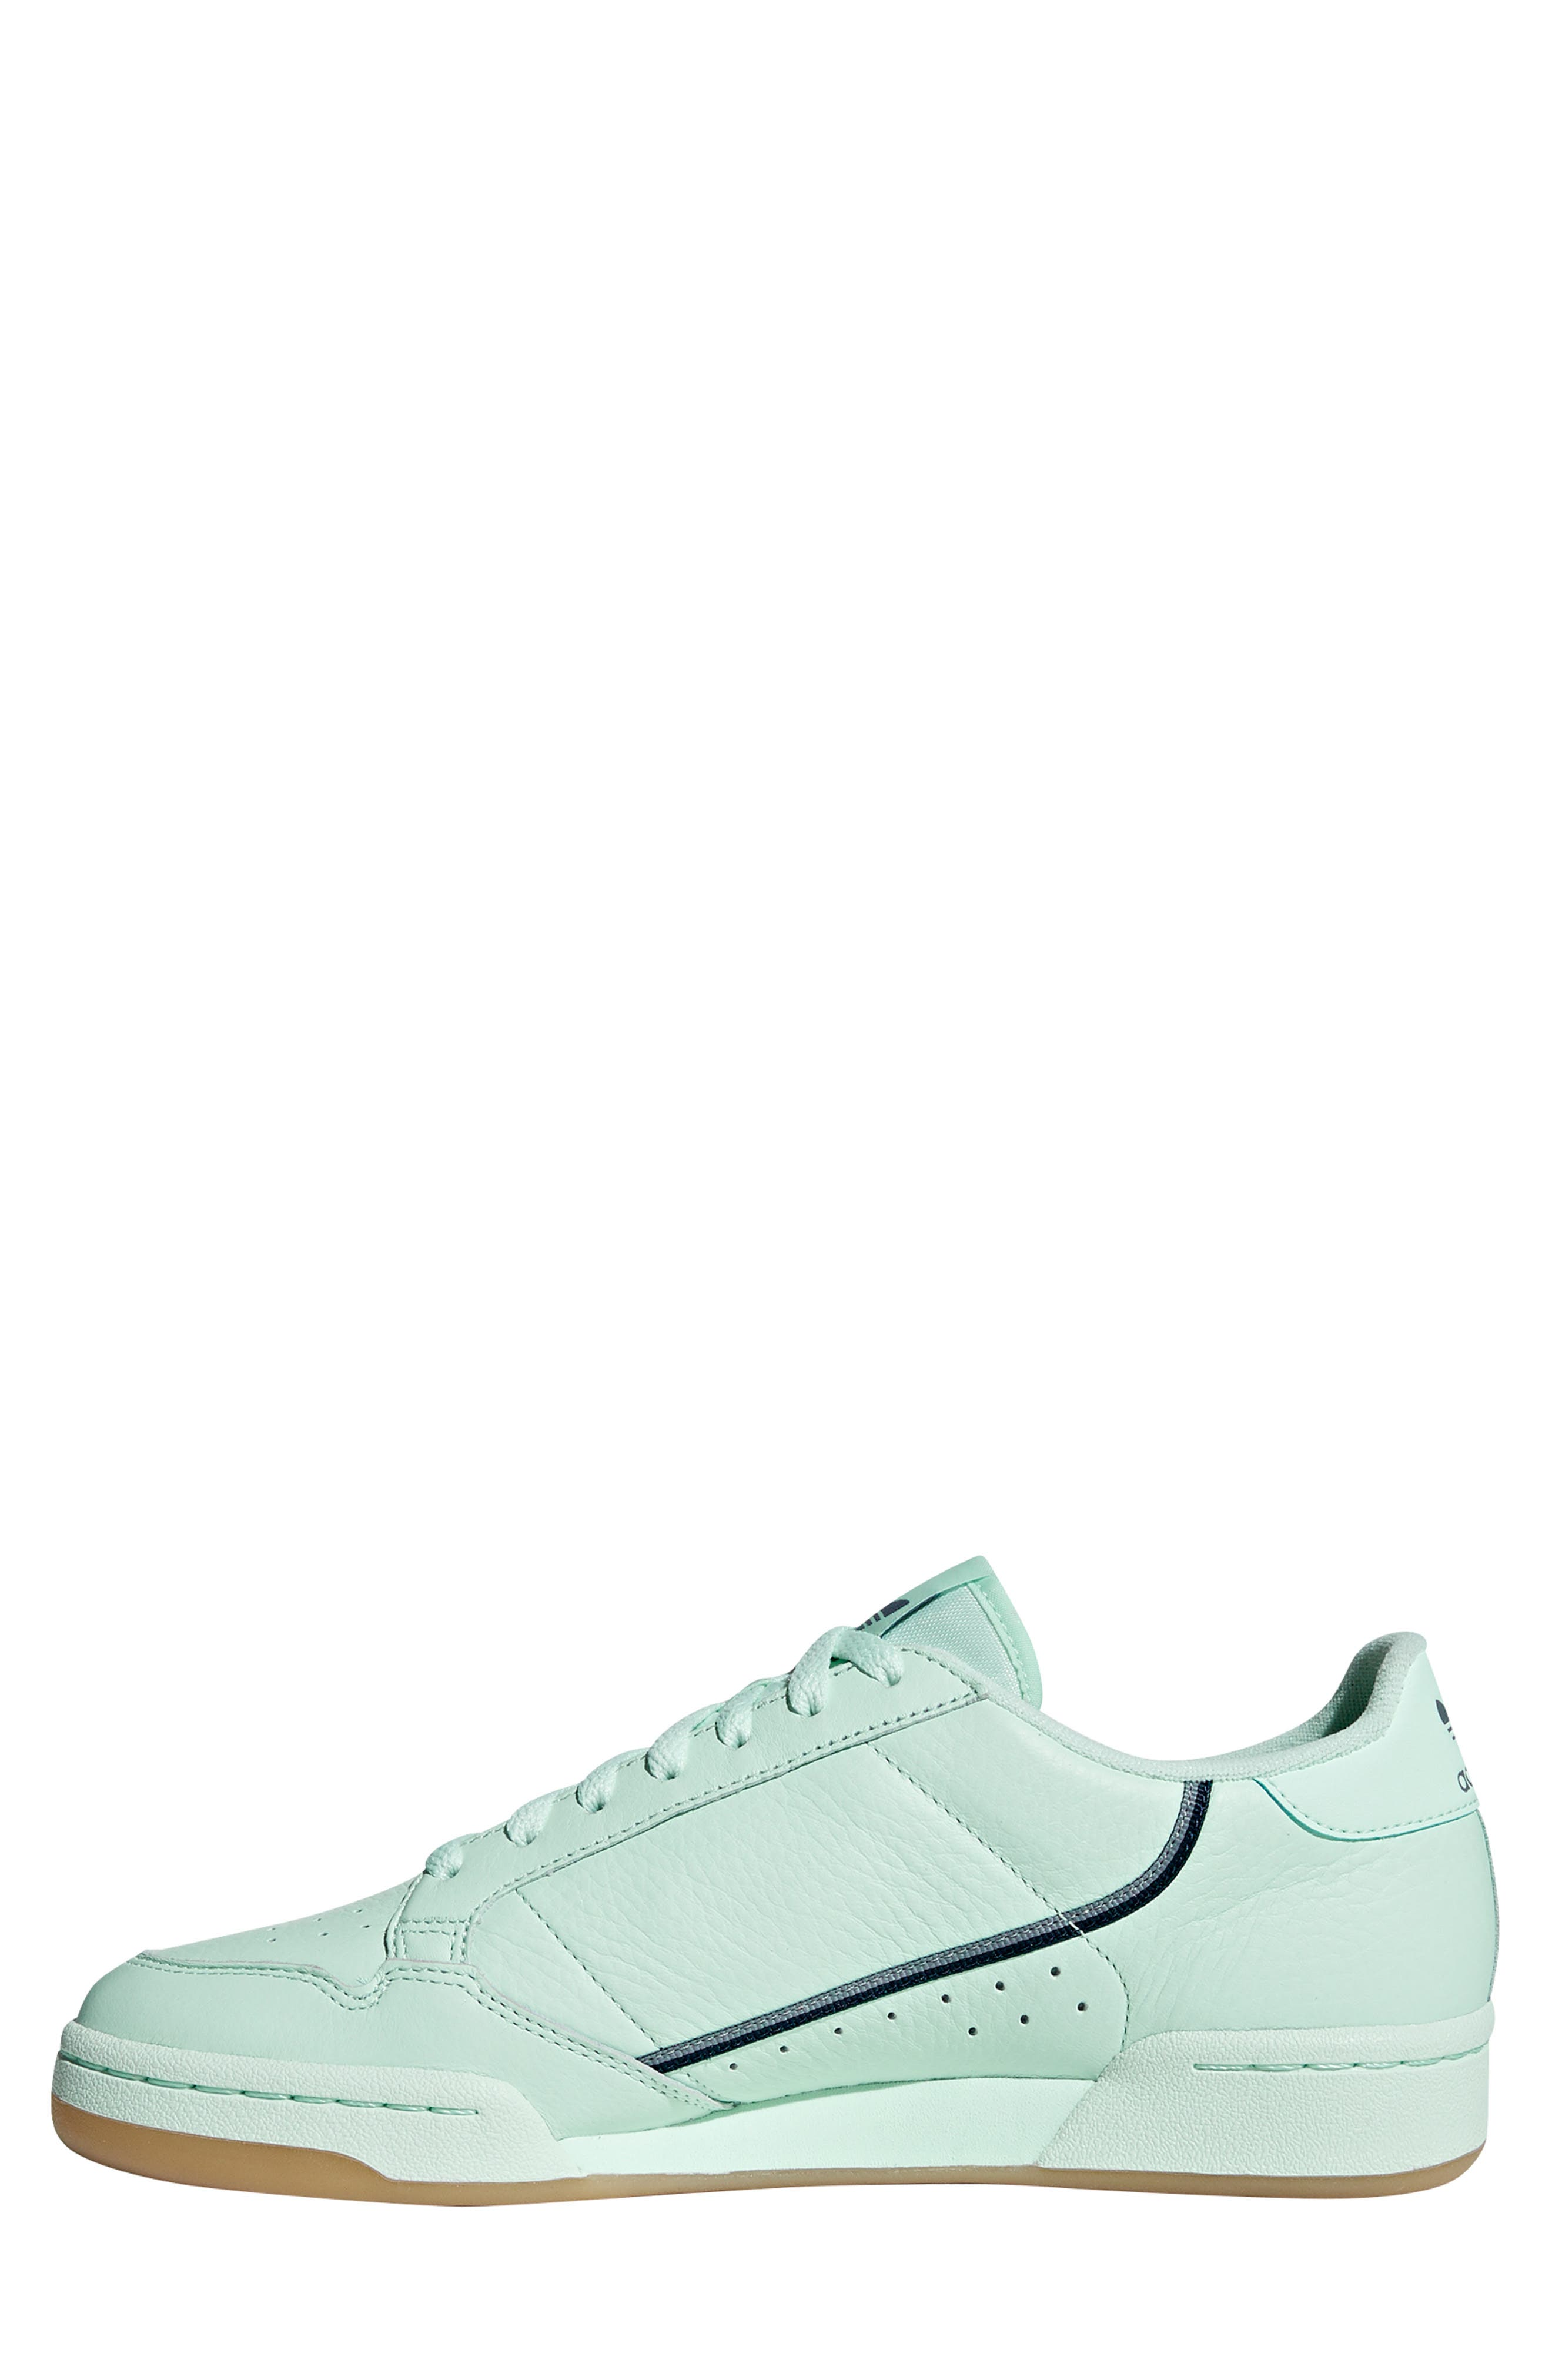 ADIDAS, Continental 80 Sneaker, Alternate thumbnail 9, color, ICE MINT/ NAVY/ GREY